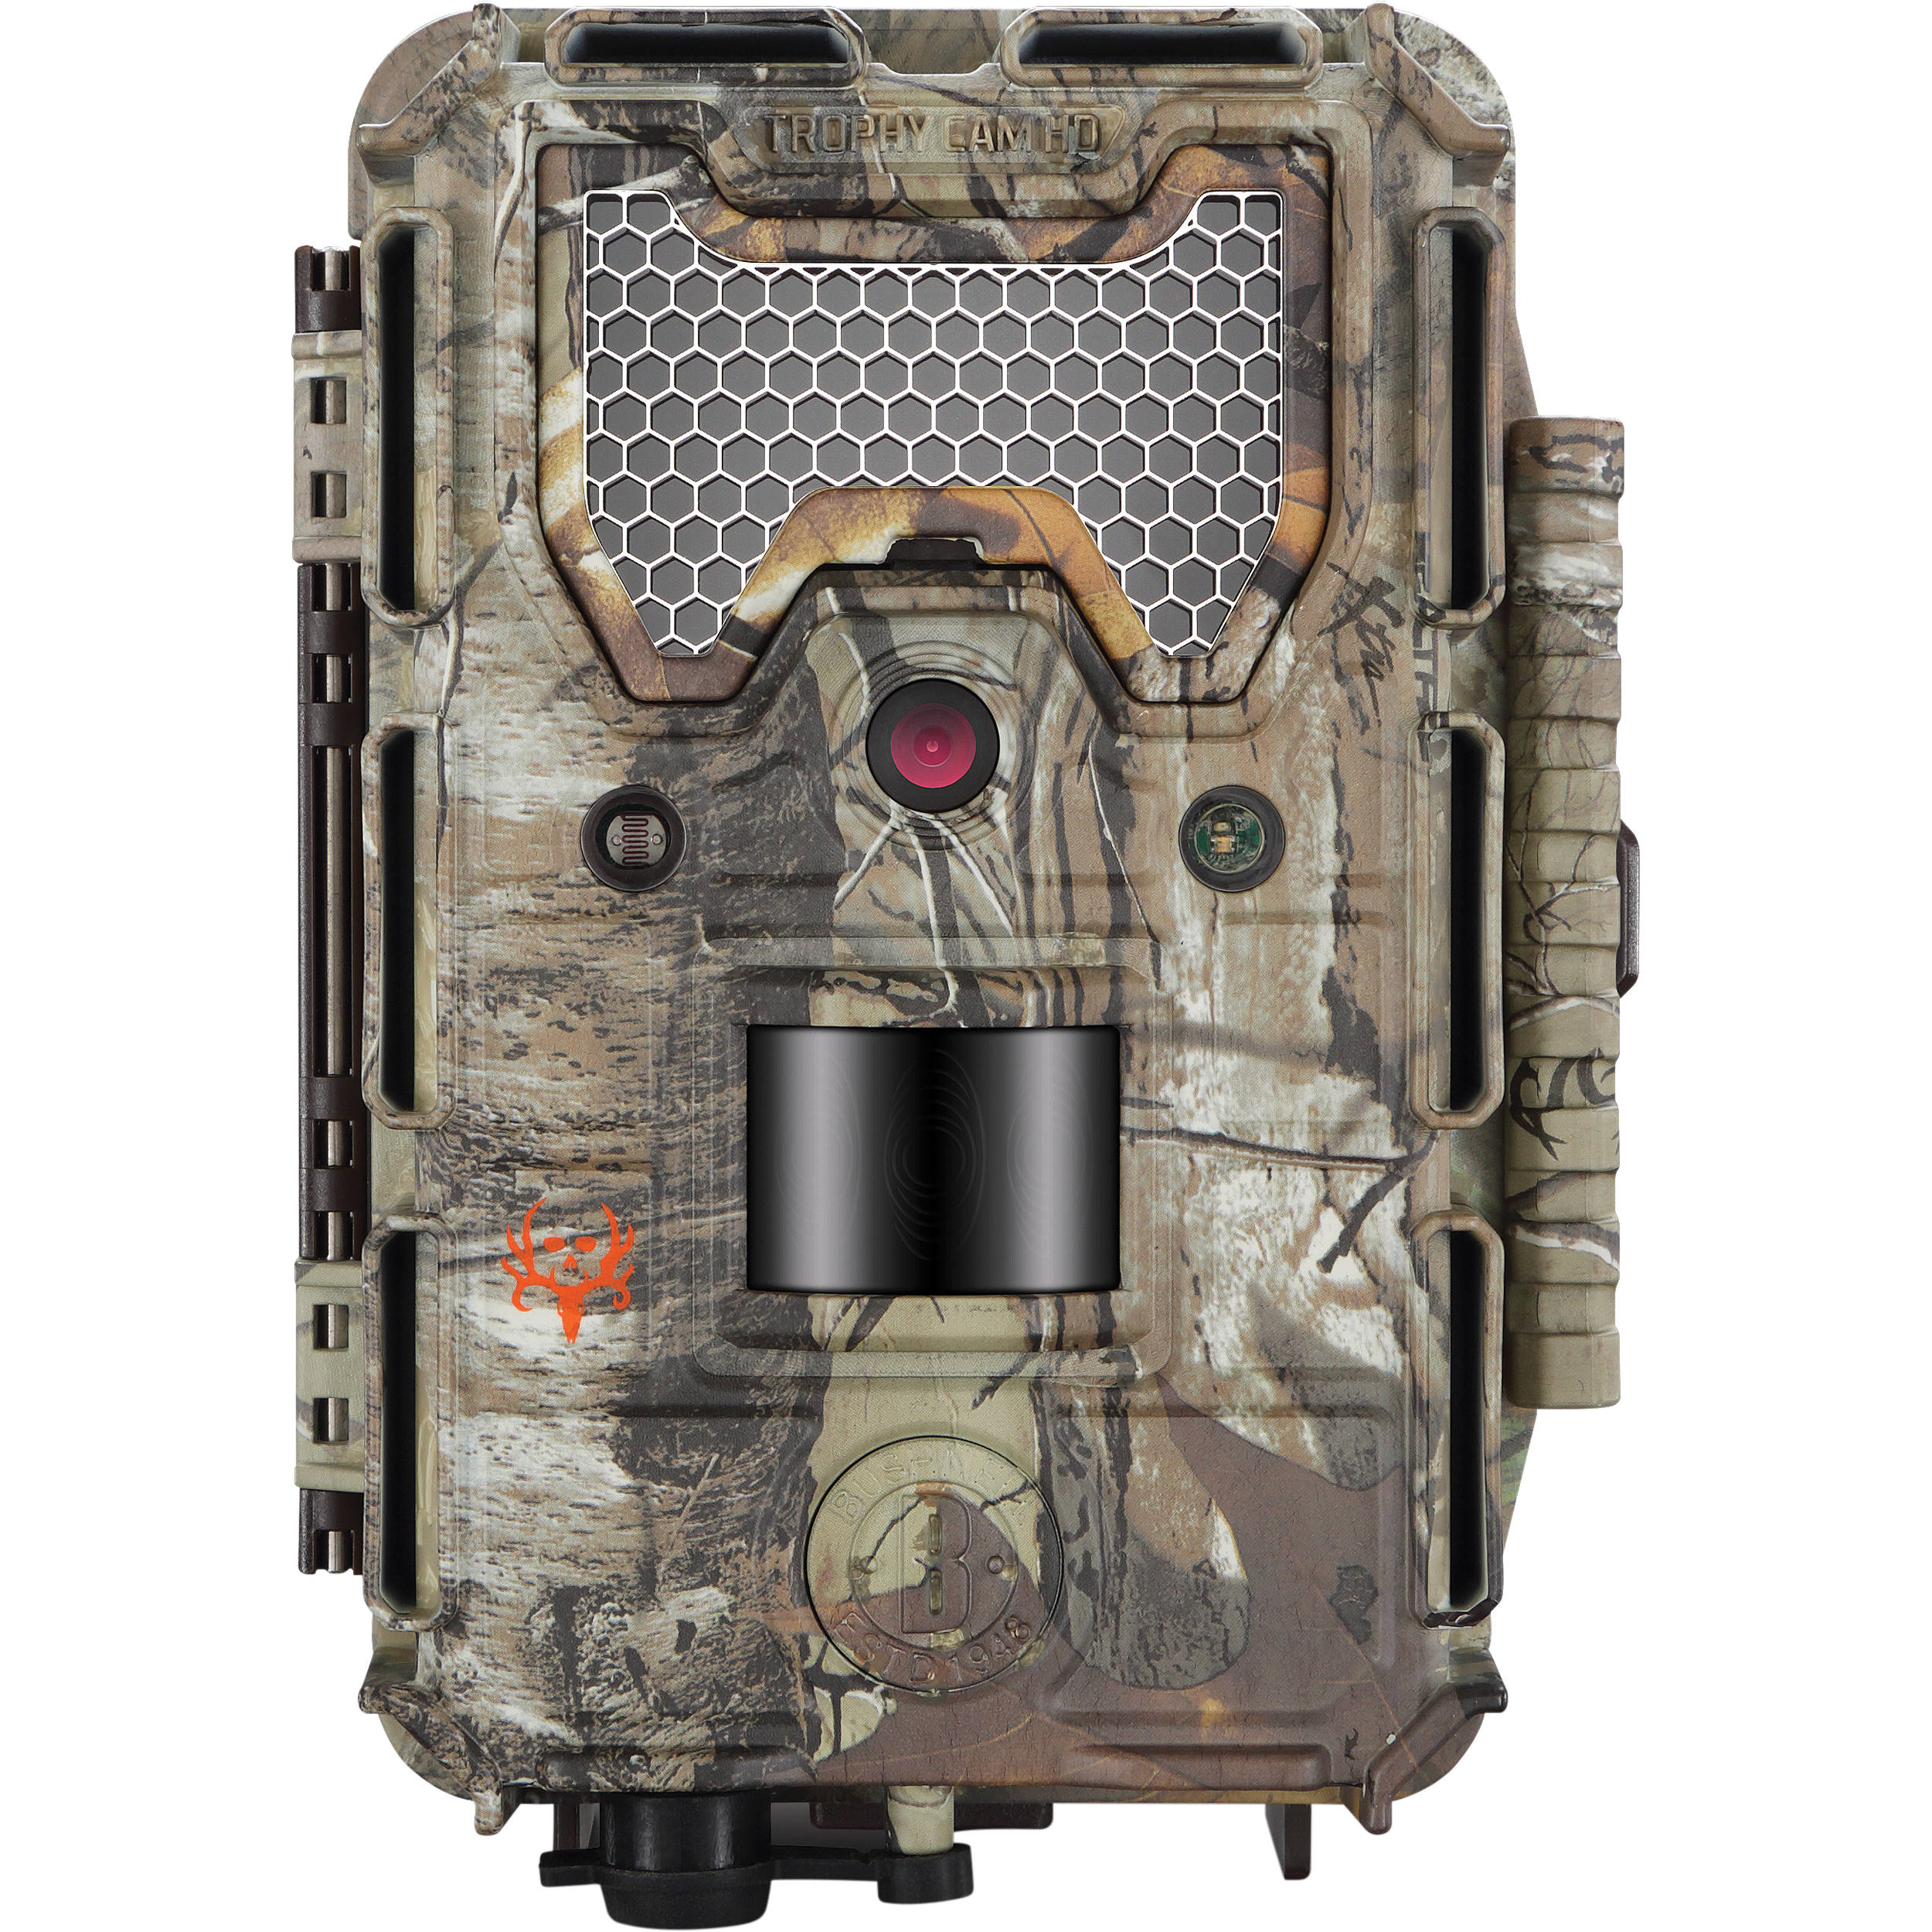 bushnell trophy cam hd aggressor low glow trail camera 119775c. Black Bedroom Furniture Sets. Home Design Ideas